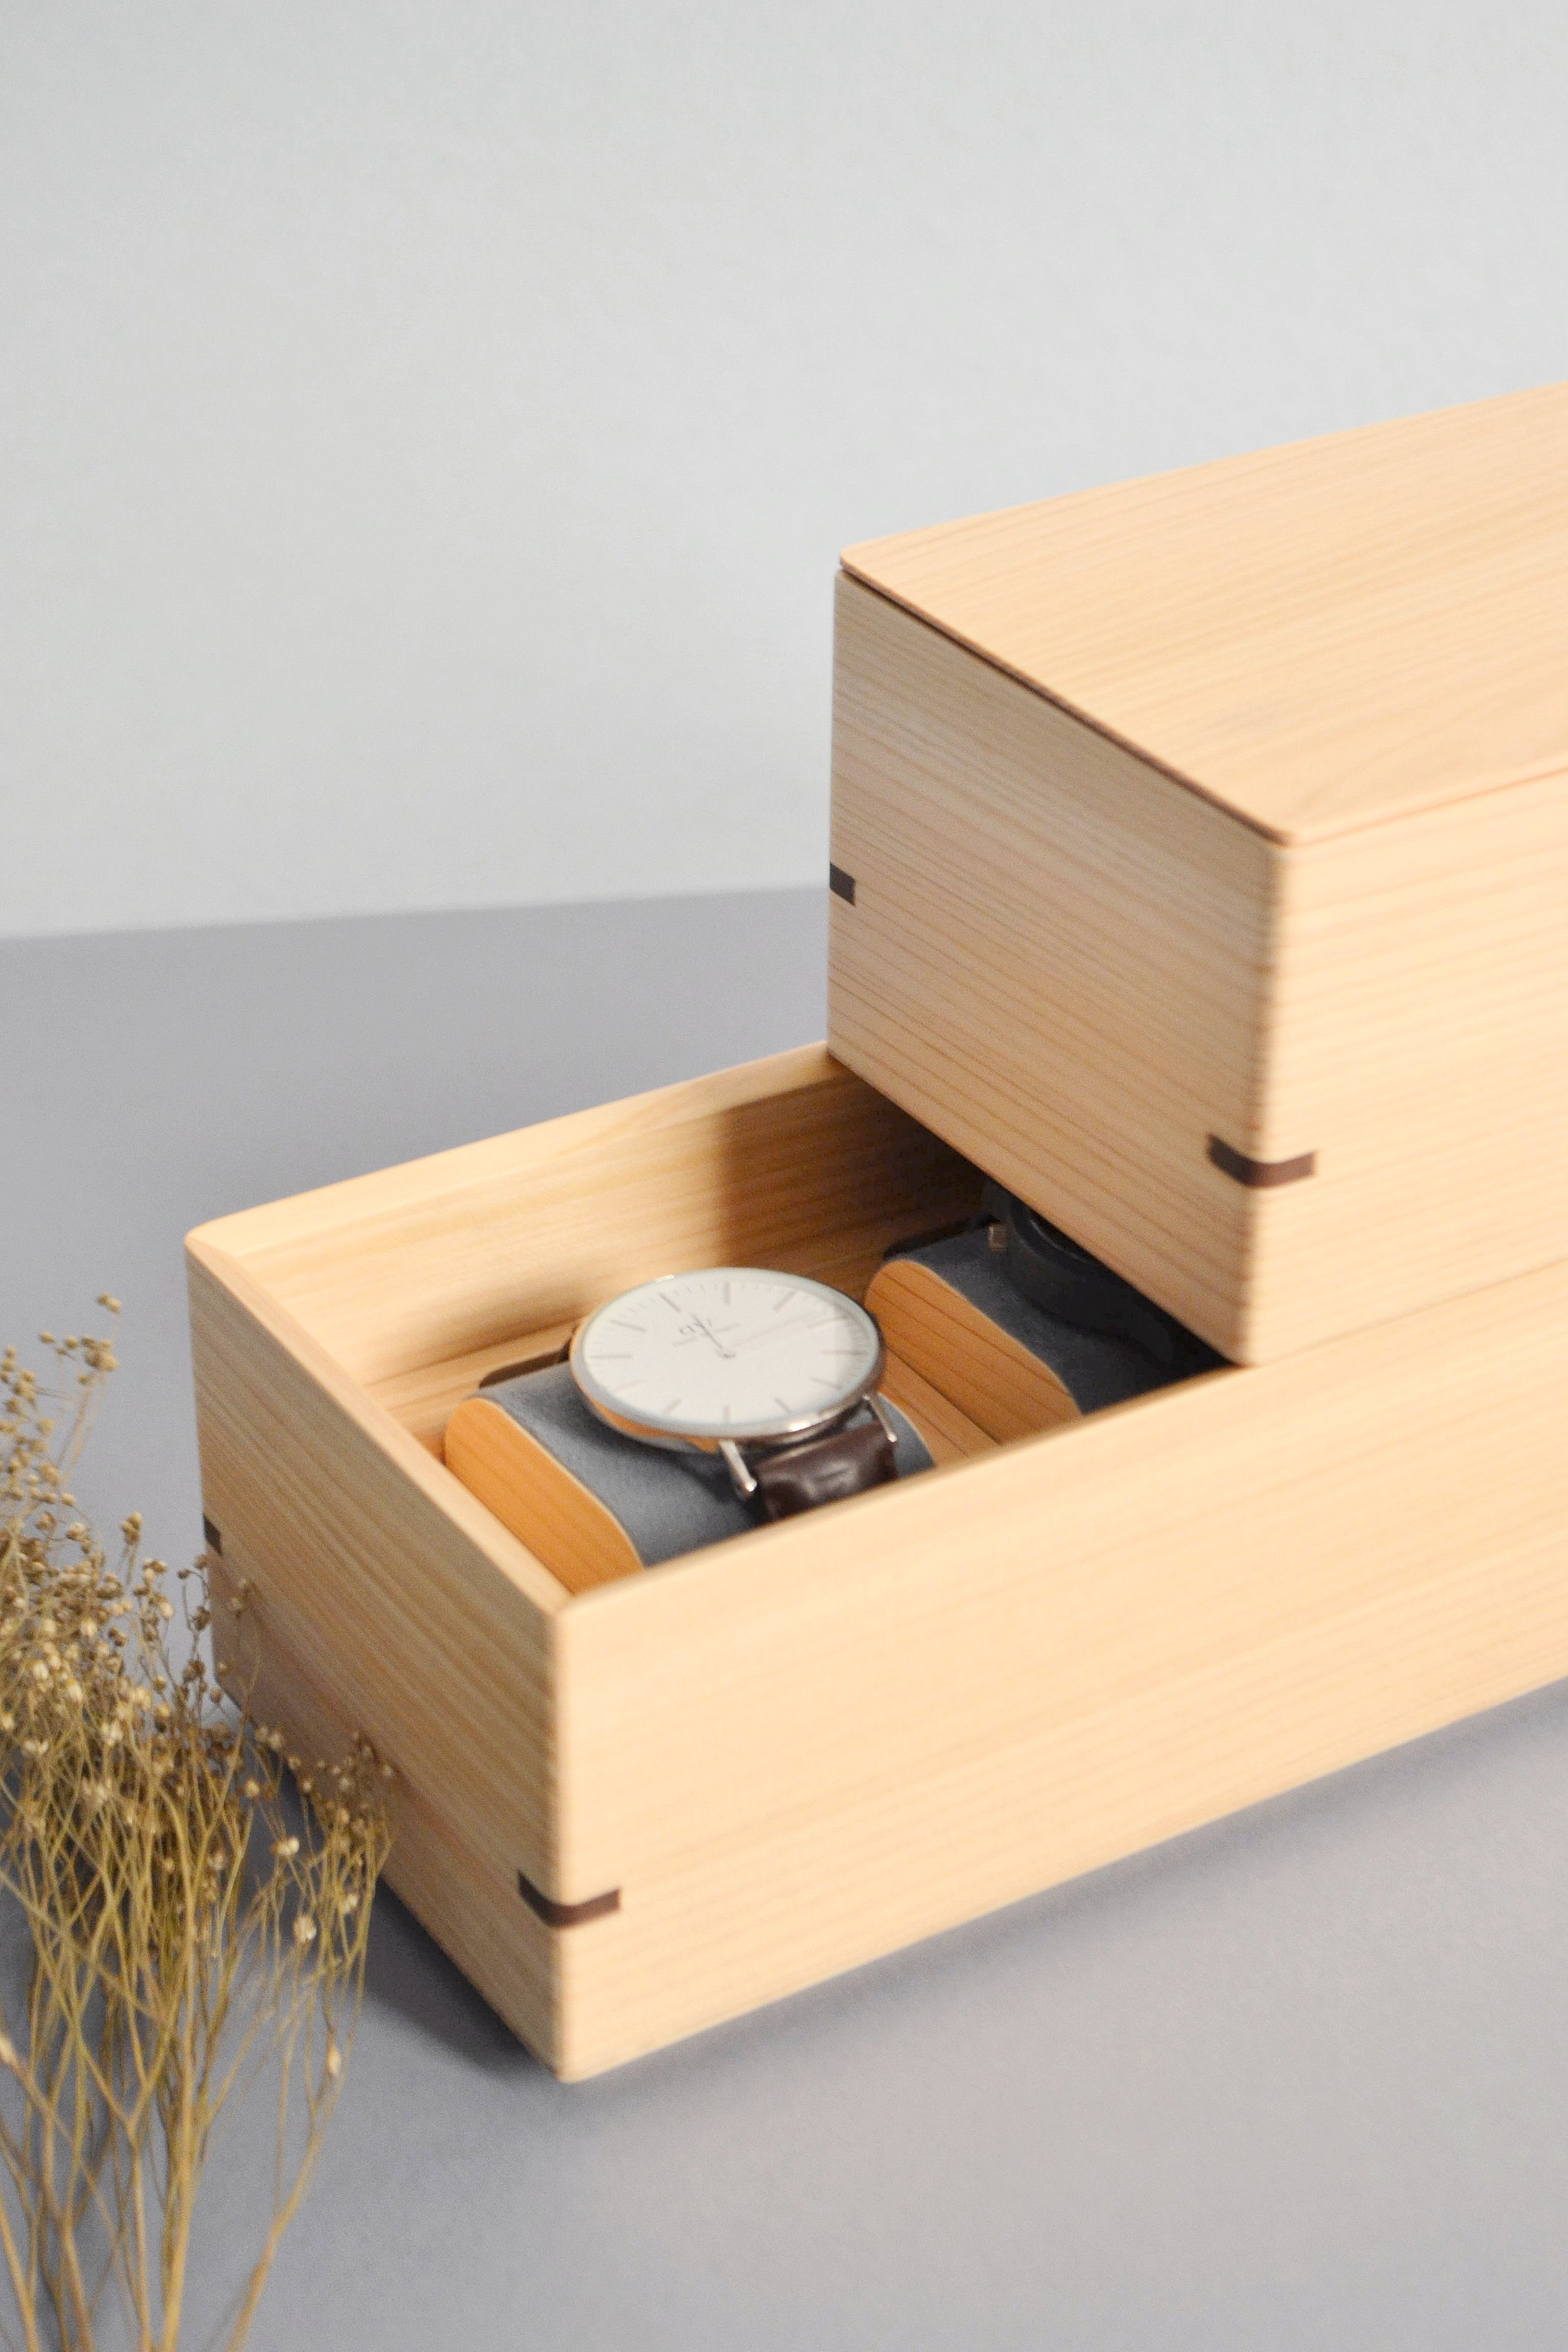 Atelier+Takumi+_+Watch+storage+Hako+-+crafted+by+Toyooka+Craft+designed+by+Flavien+Delbergue5.jpg